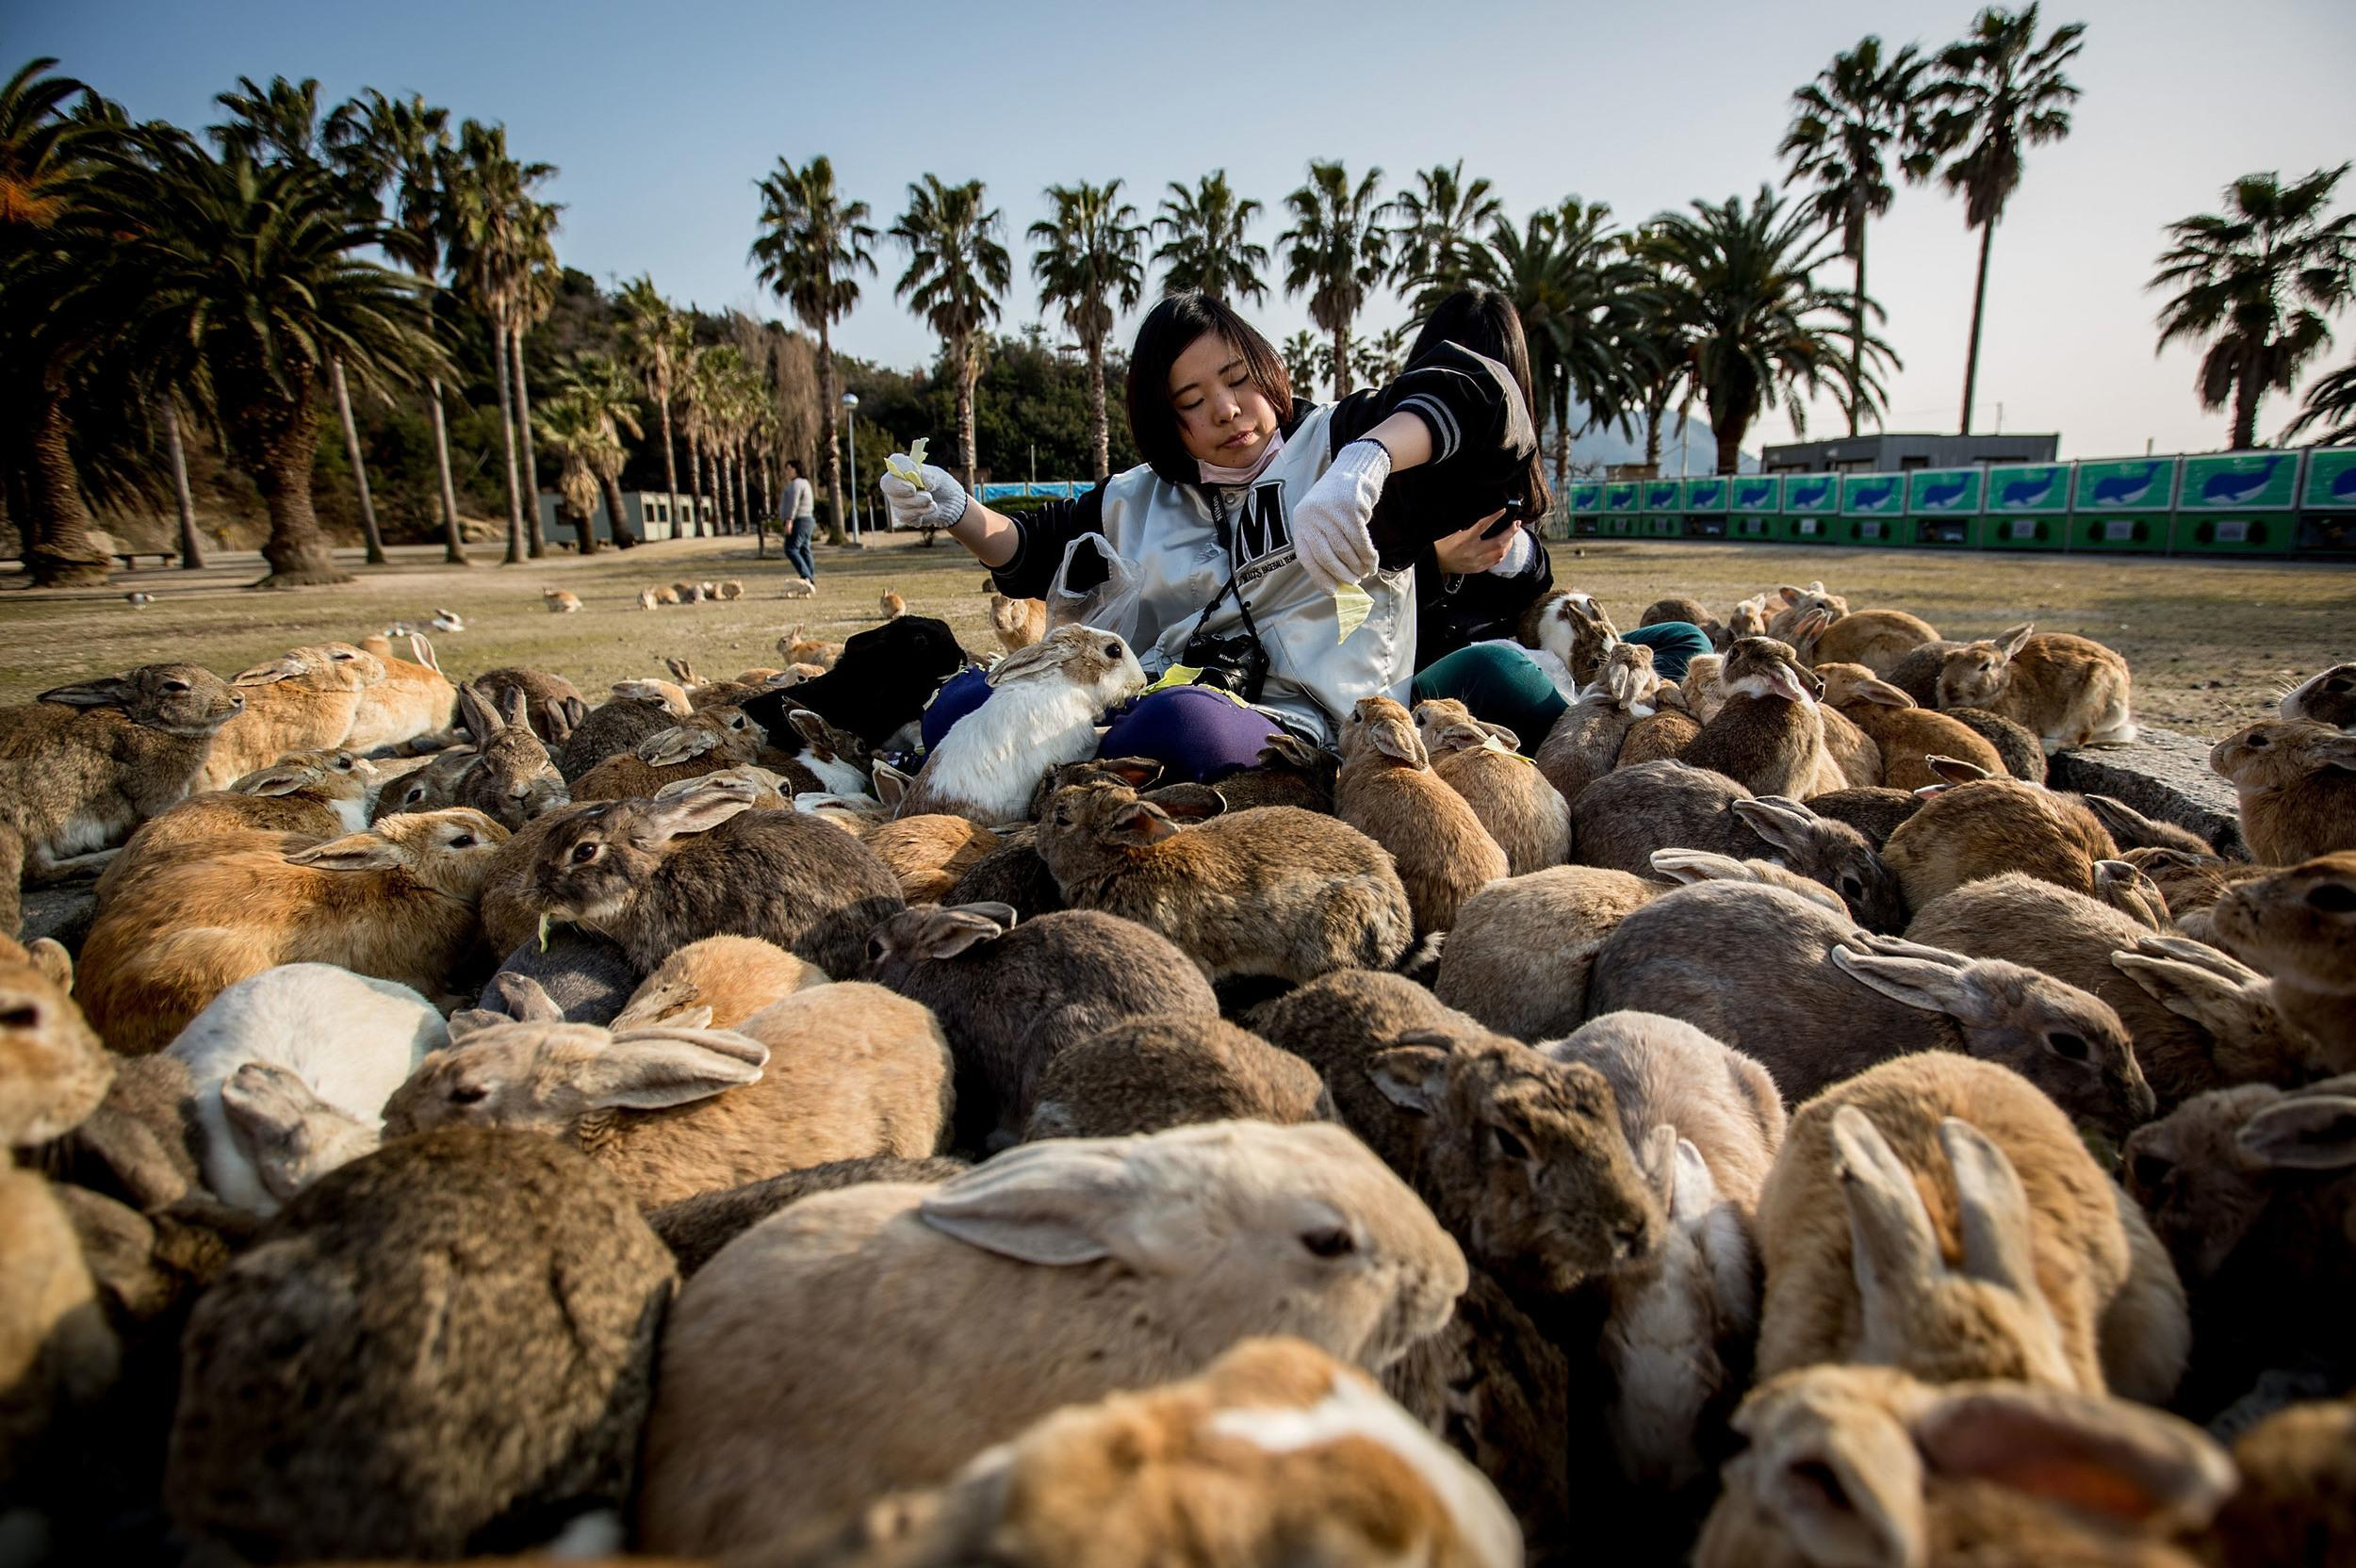 <p>Okunoshima Island, in Japan, attracts tourists to witness its huge rabbit population that has taken over the island, with many people visiting to feed the animals. The island, often called Usagi Jima or Rabbit Island, was used as a poison gas facility in World War II. The rabbits were intentionally set loose after the war when the island was developed as a park.</p>